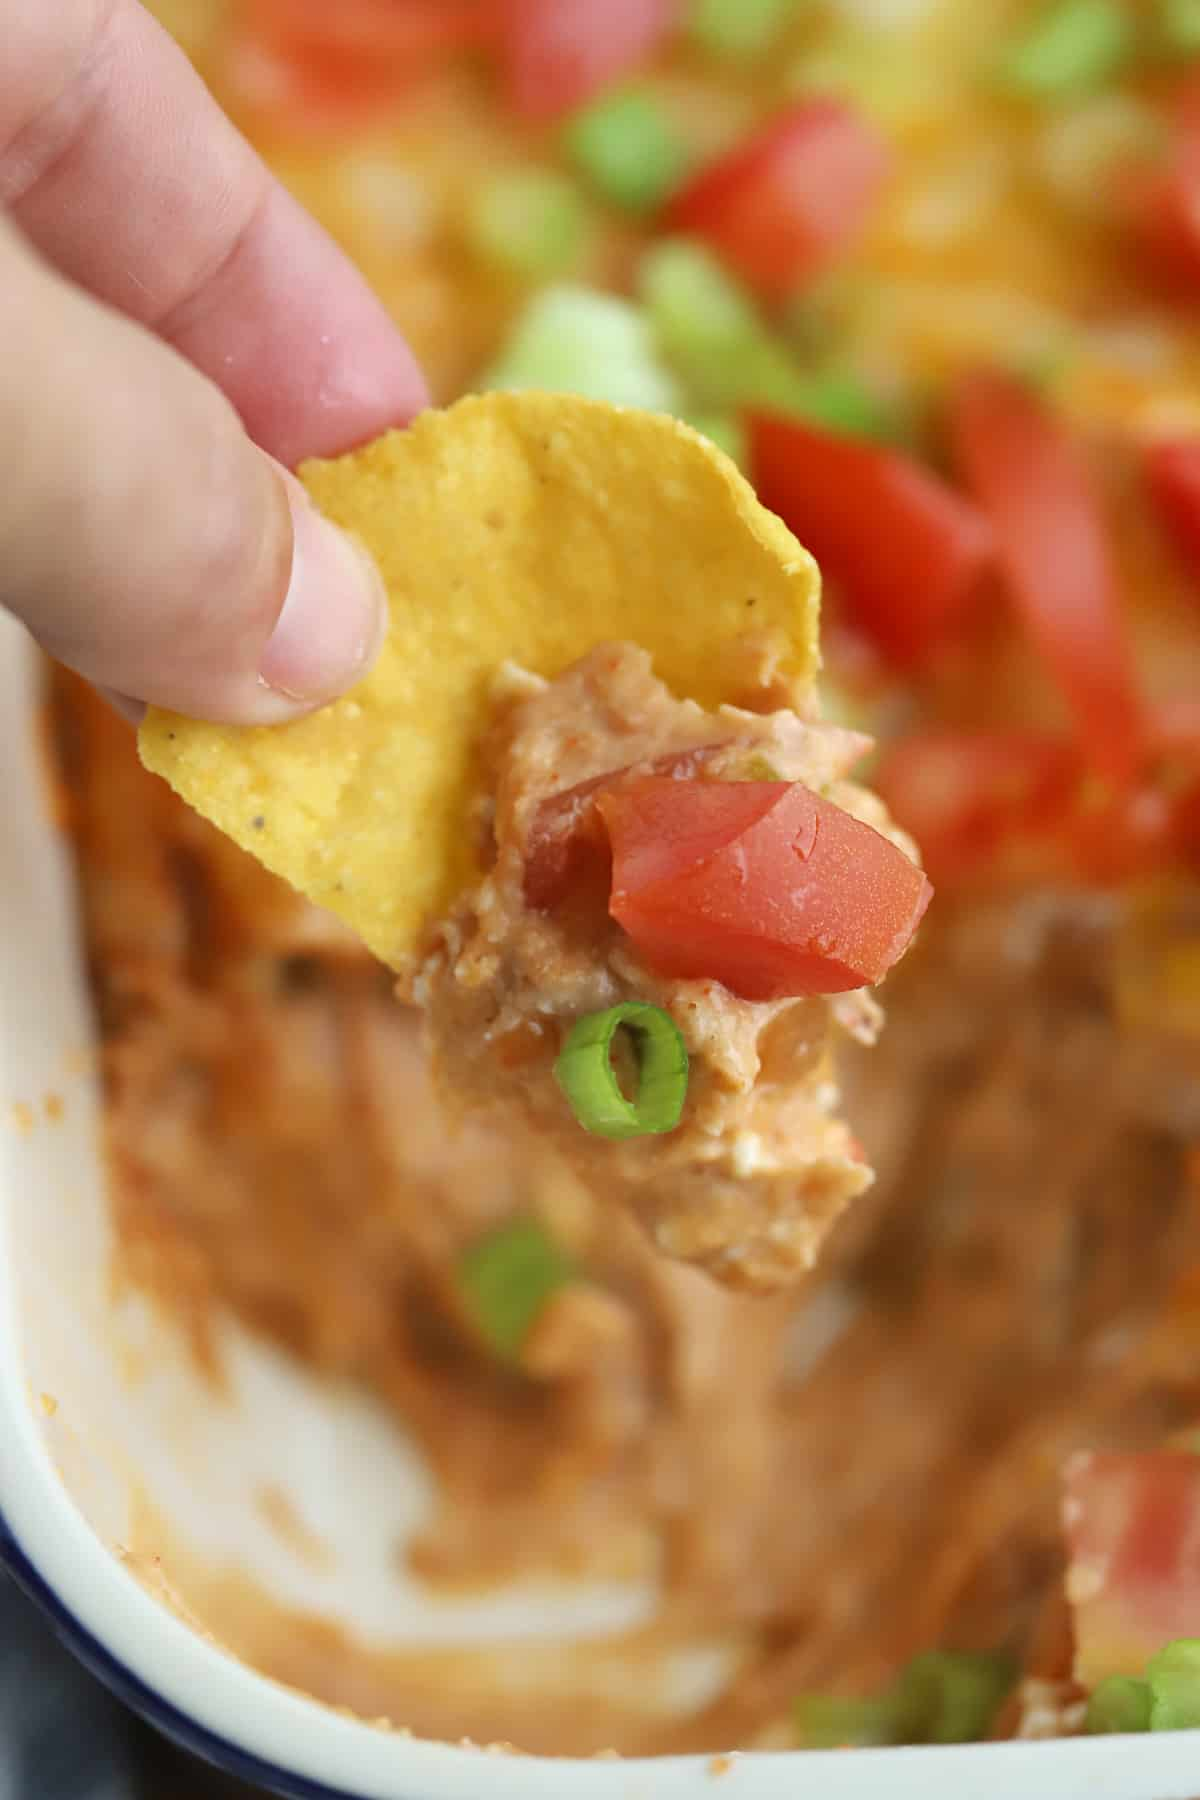 A hand holding a tortilla chip that has been dipped into Cheesy Bean Dip.